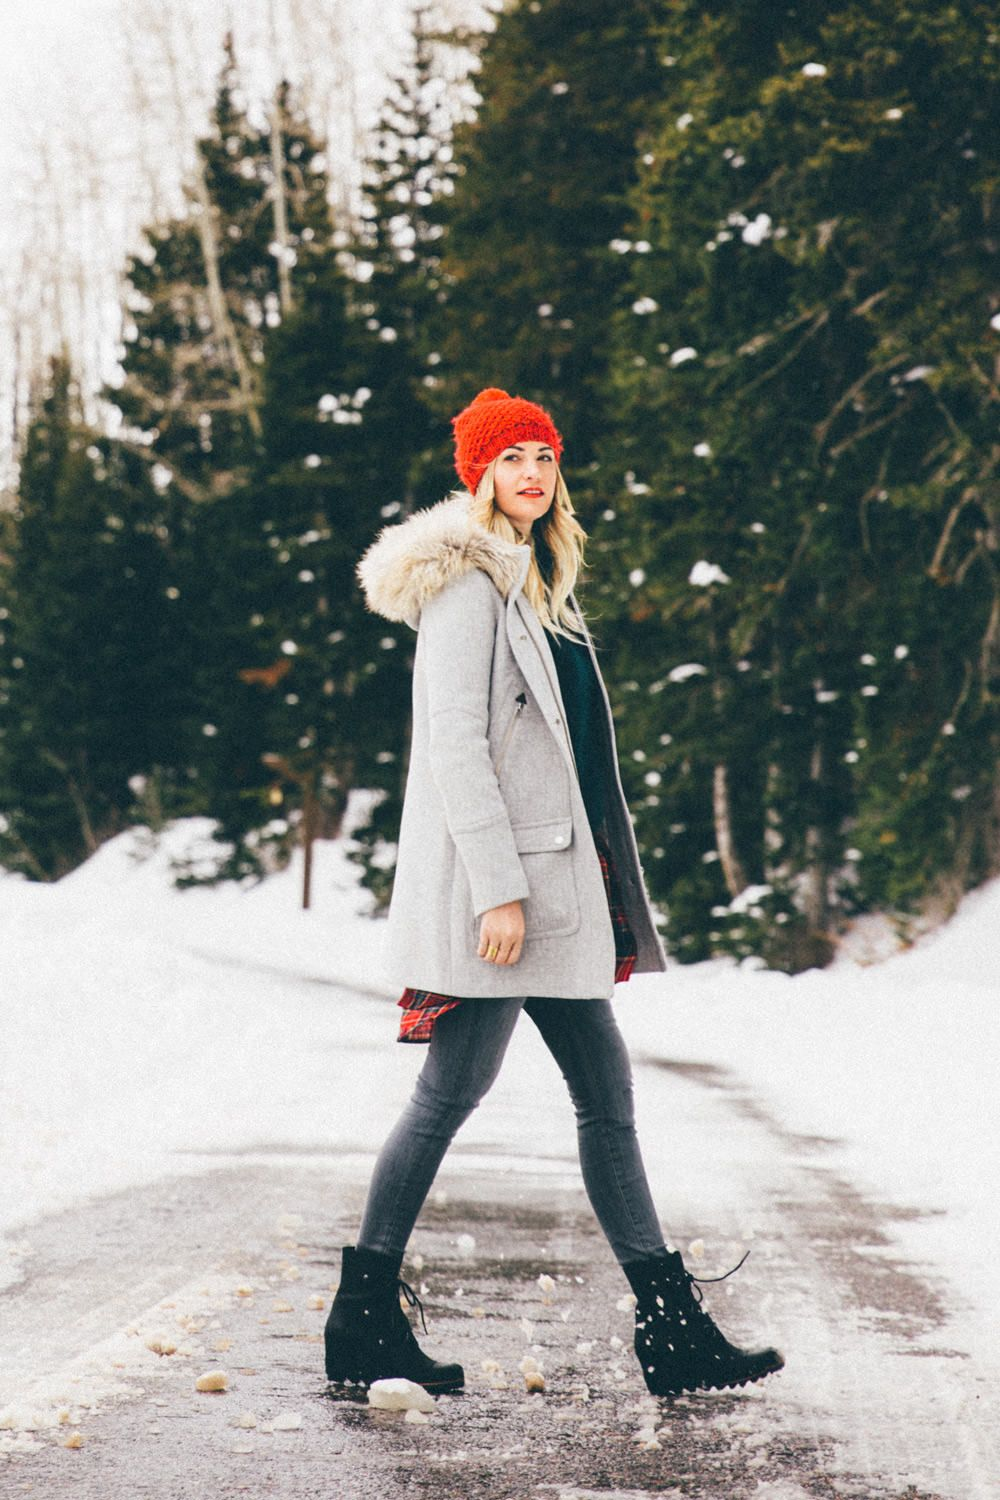 c0ea0c2f5e3e Caitlin Lindquist of the travel blog Dash of Darling wears a winter outfit  in the snow while visiting home in Park City, Utah.